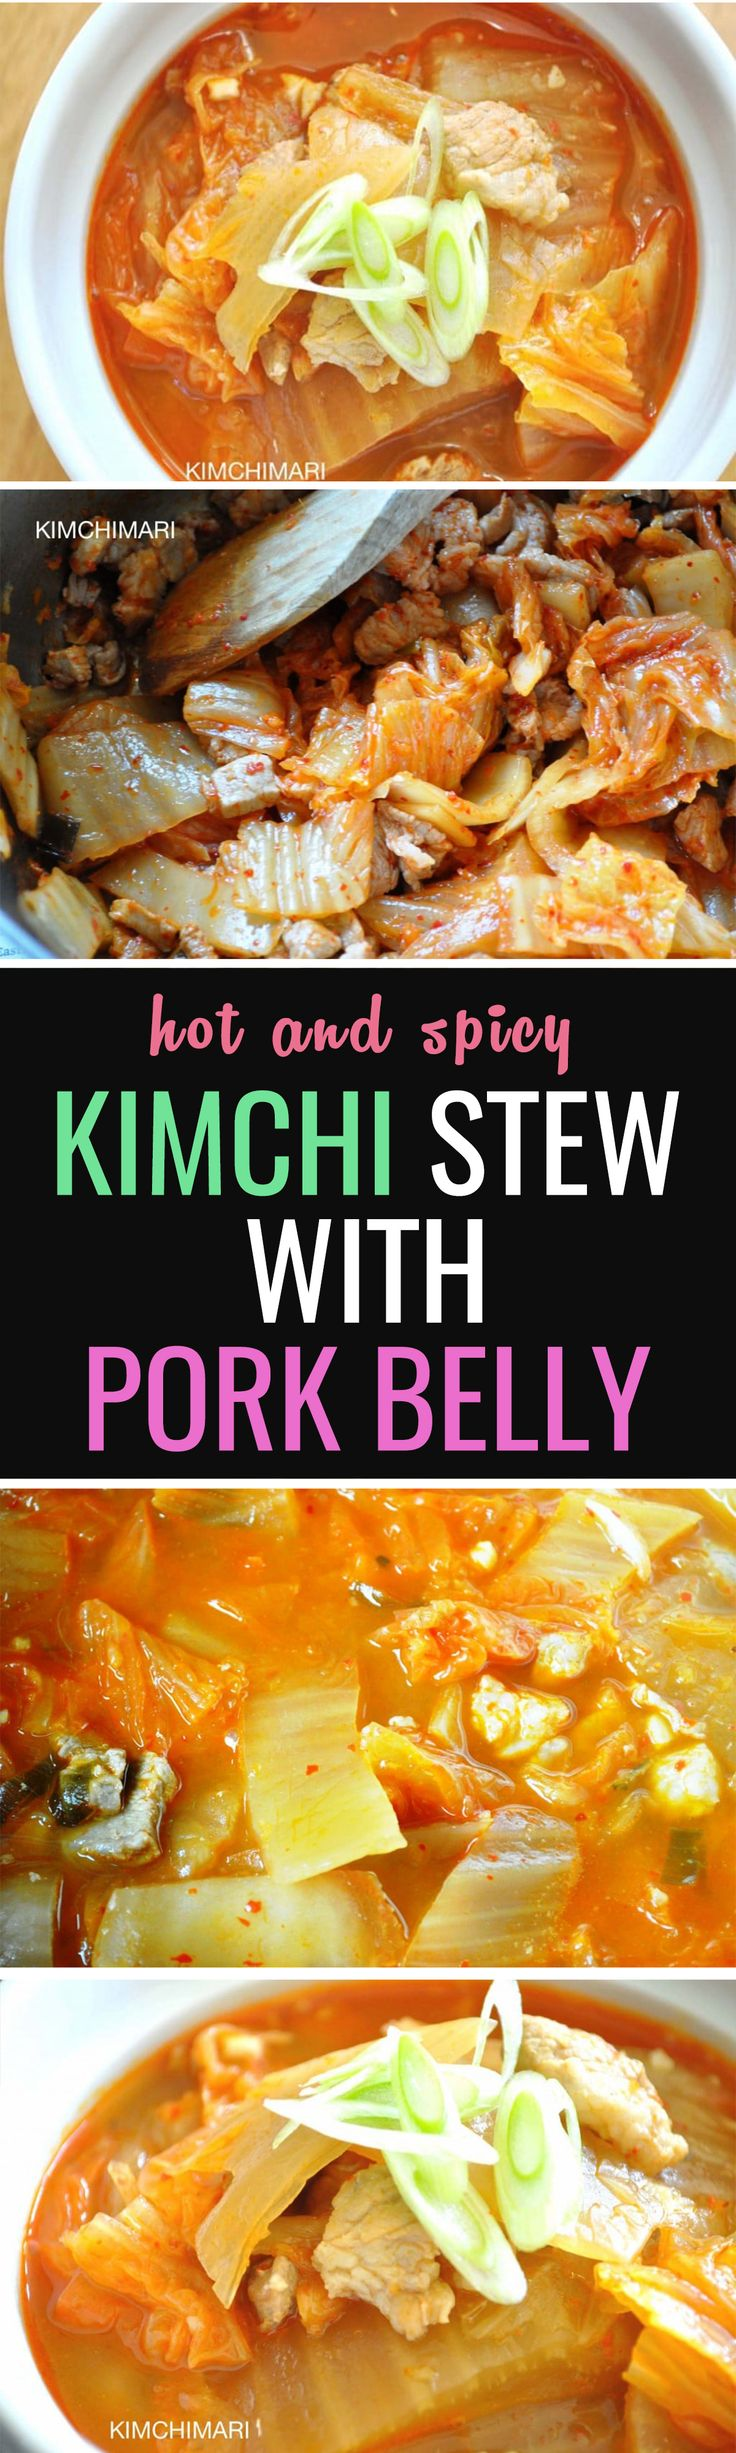 Easy classic Kimchi Stew with Pork recipe! Get your steamed rice ready!